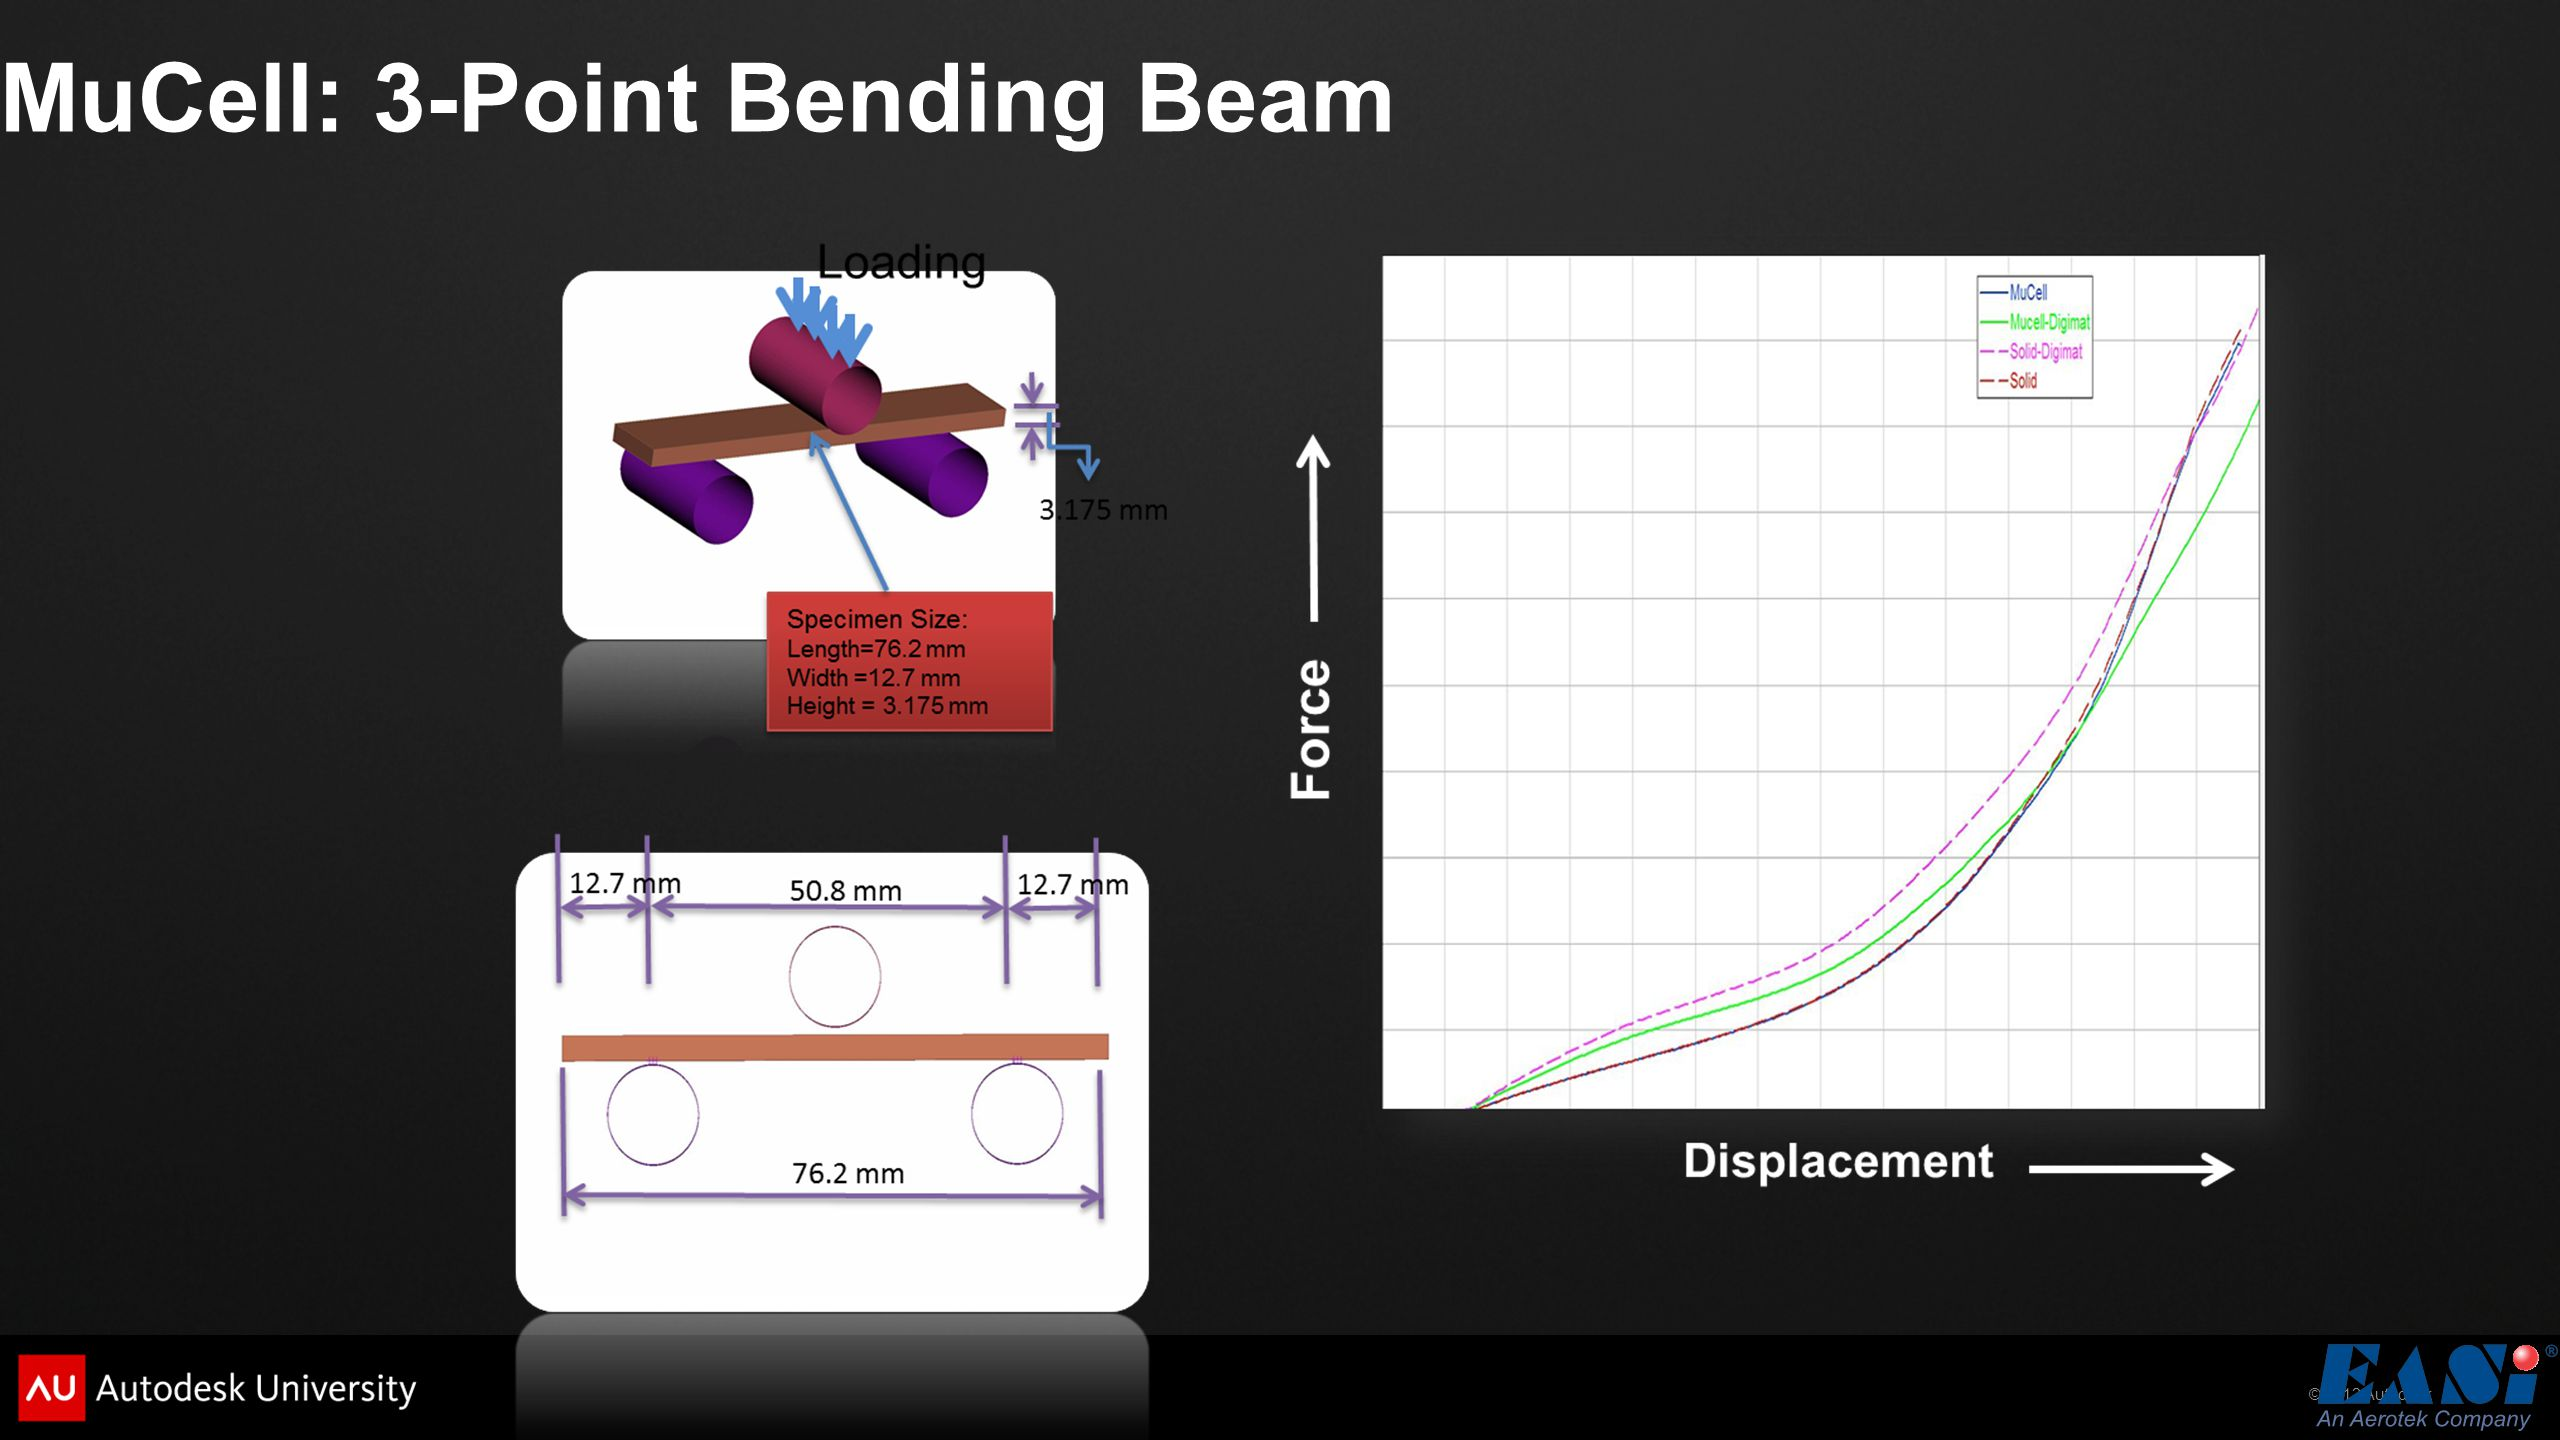 MuCell: 3-Point Bending Beam